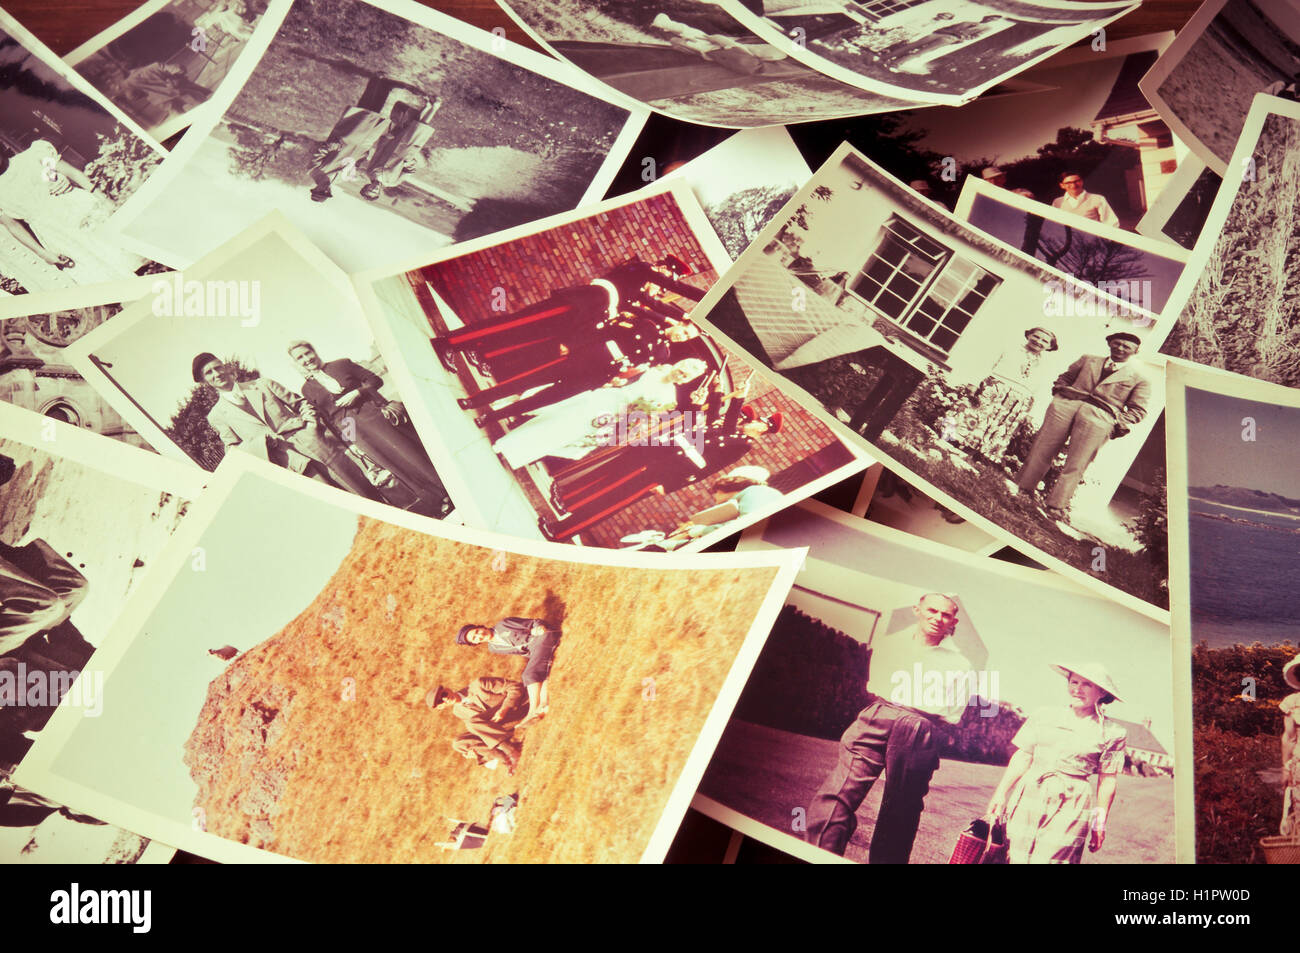 scattered vintage photos from the sixties and seventies - Stock Image